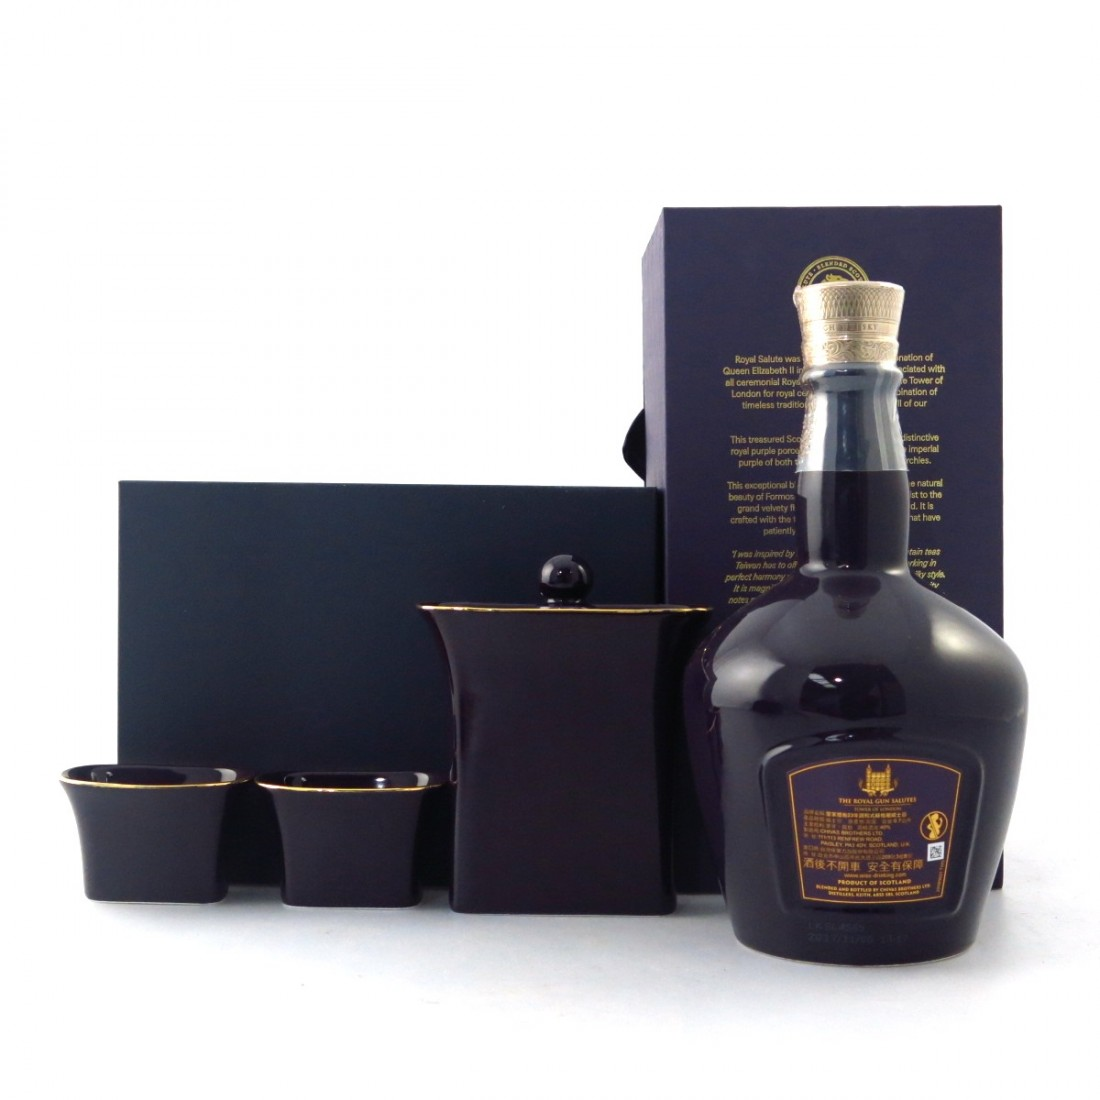 Chivas 23 Year Old Royal Salute / Taiwanese Exclusive with Cups & Flask